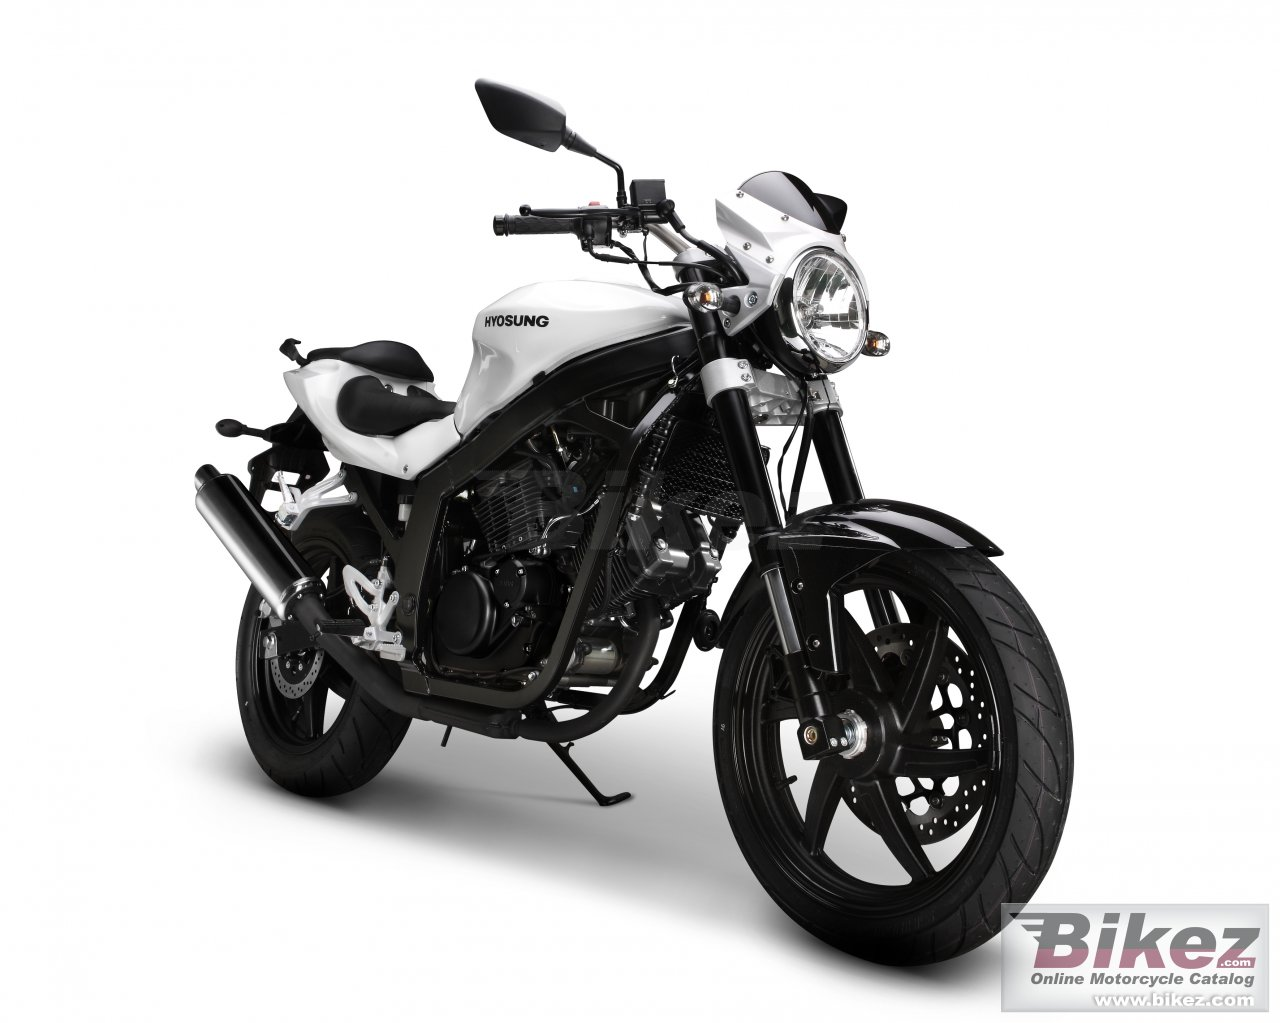 Big Hyosung gt 250 picture and wallpaper from Bikez.com